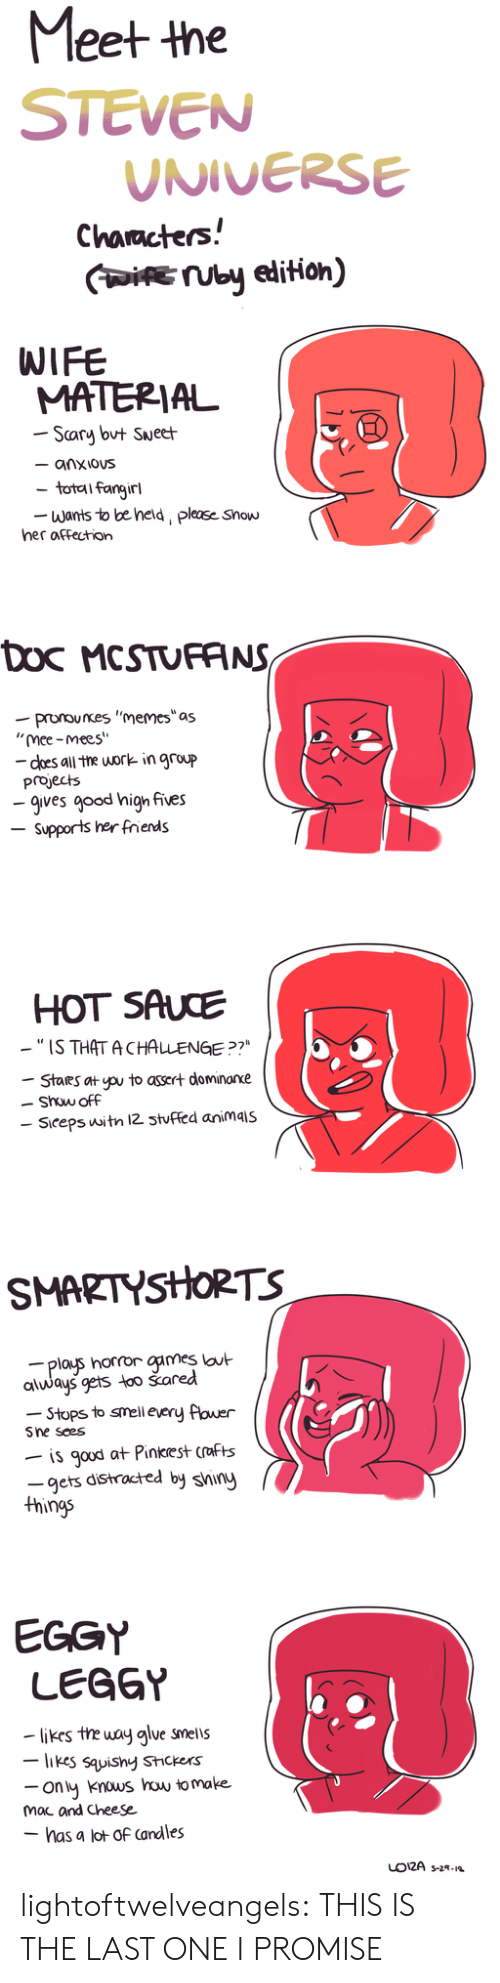 "Group Projects: Meet the  STEVEN  UNIVERSE  Characters!  IUby edition)  WIFE  MATERIAL  Scary but Sueet  - anxious  total fangirl  Wants to be held, please Show  her affection  Doc MCSTUFANS  -pronounes ""memes""as  ""mee-mees""  - does all the work in group  projects  -gives good high fives  Supports her frends  HOT SAUCE  -""IS THAT ACHALENGE ?7  Stares at pu to assert dominarxe  Show off  Siceps witn 12 3tuffed animais  SMARTYSHORTS  plays horror games lout  always gets too šared  -Stops to smell every flower  Sne sees  is gaud at Pinkrest crafts  -gets distracted by shiny  things  EGGY  LEGGY  likes the way alue smells  -likes sauishy Stickers  ony knous how to make  mac and Cheese  - has a lot of Candles  LO12A s-2- lightoftwelveangels:  THIS IS THE LAST ONE I PROMISE"